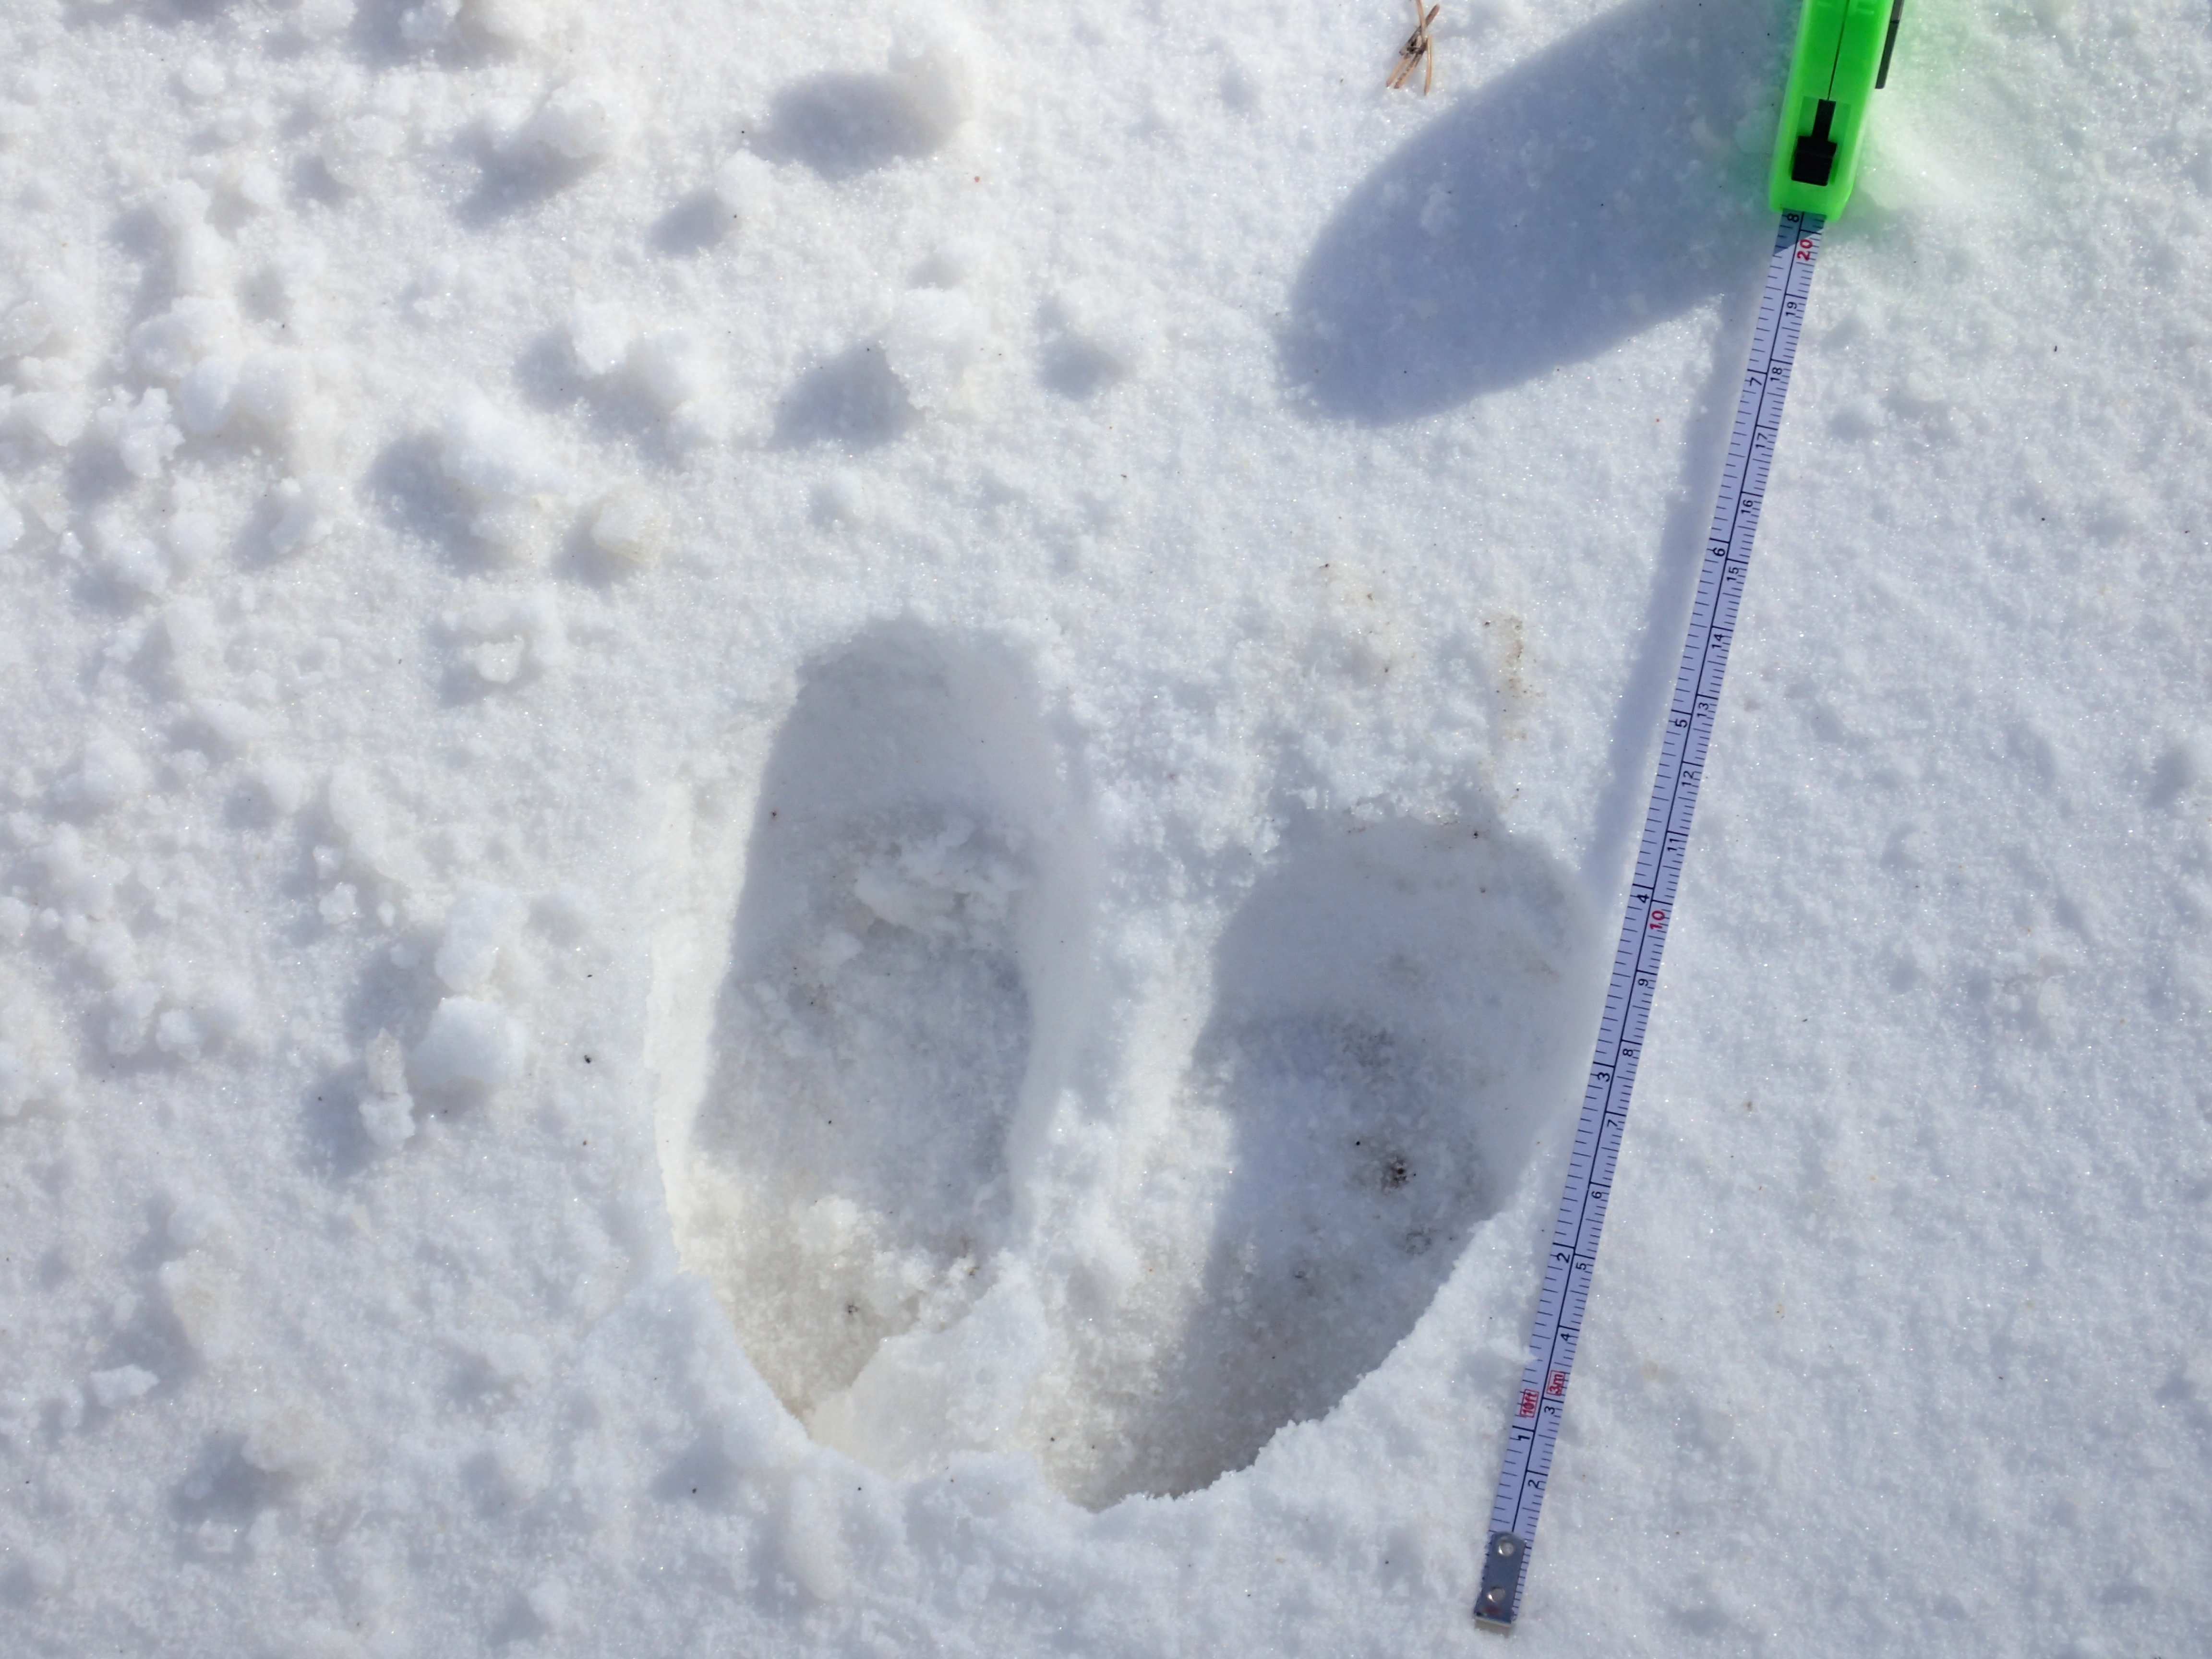 Moose track with scale